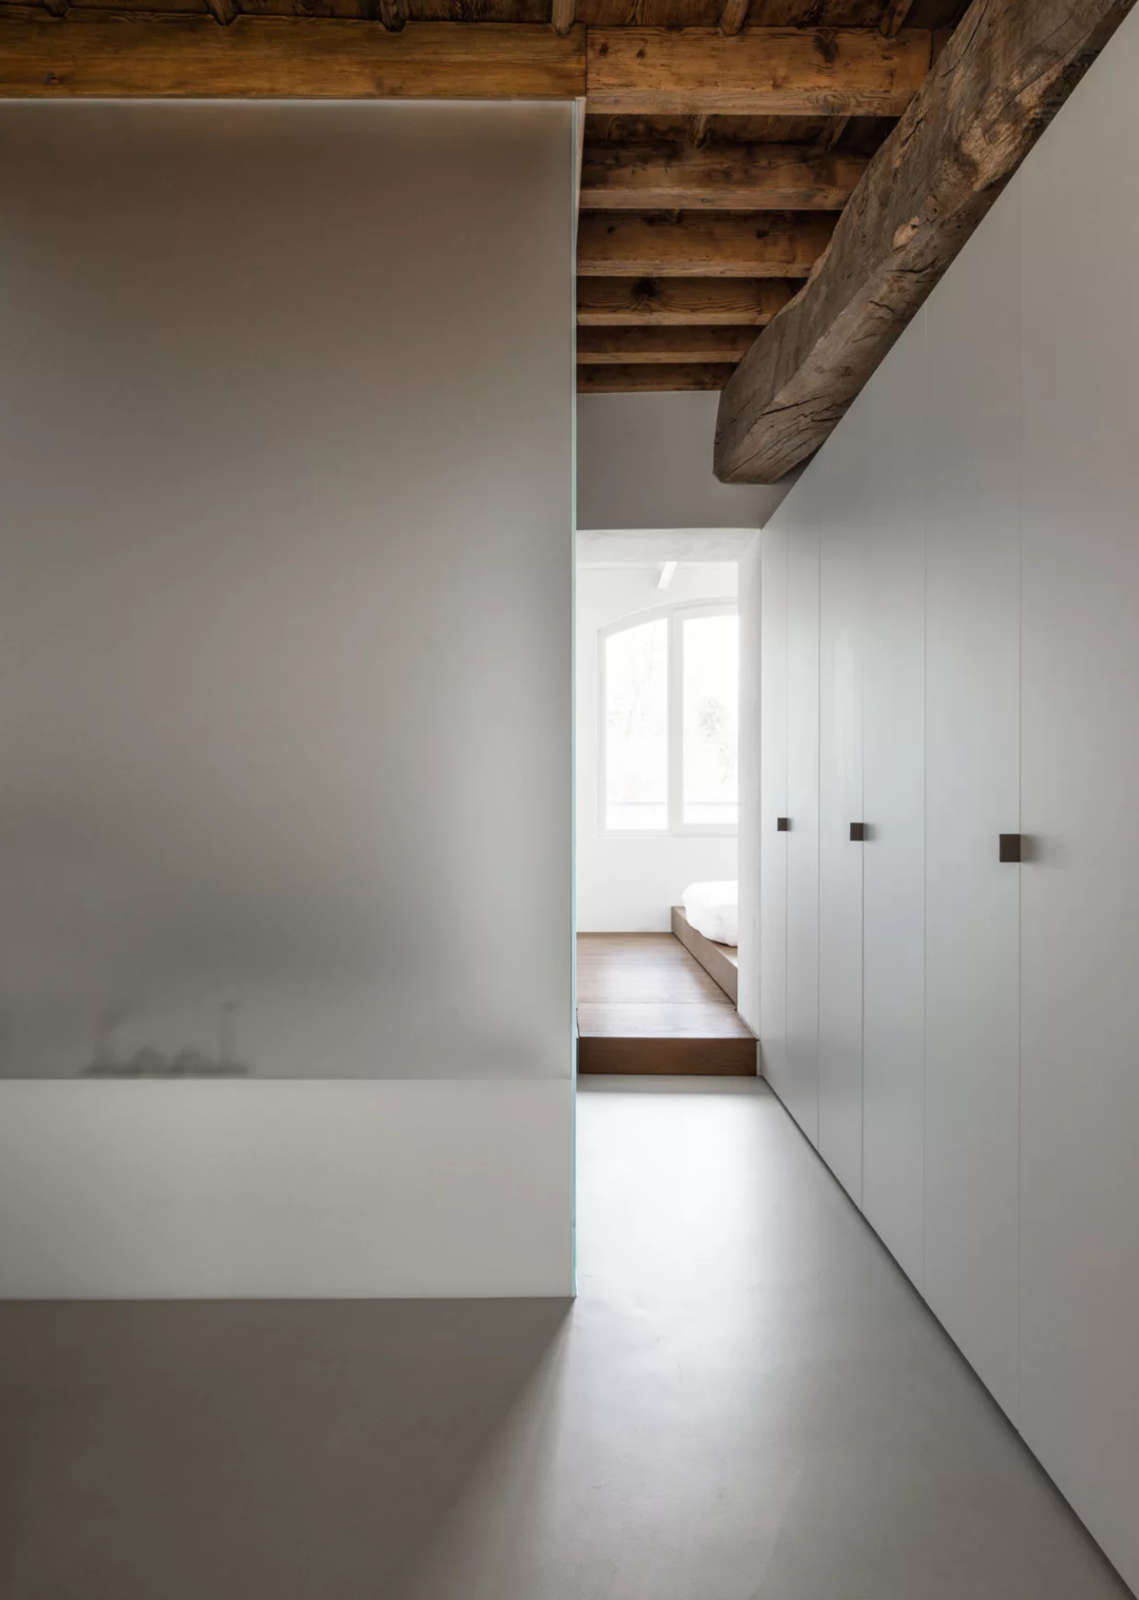 Hallway and Concrete Floor  Photo 5 of 11 in 10 Exquisitely Modern Homes in Italy from Casa A.G. by duearchitetti